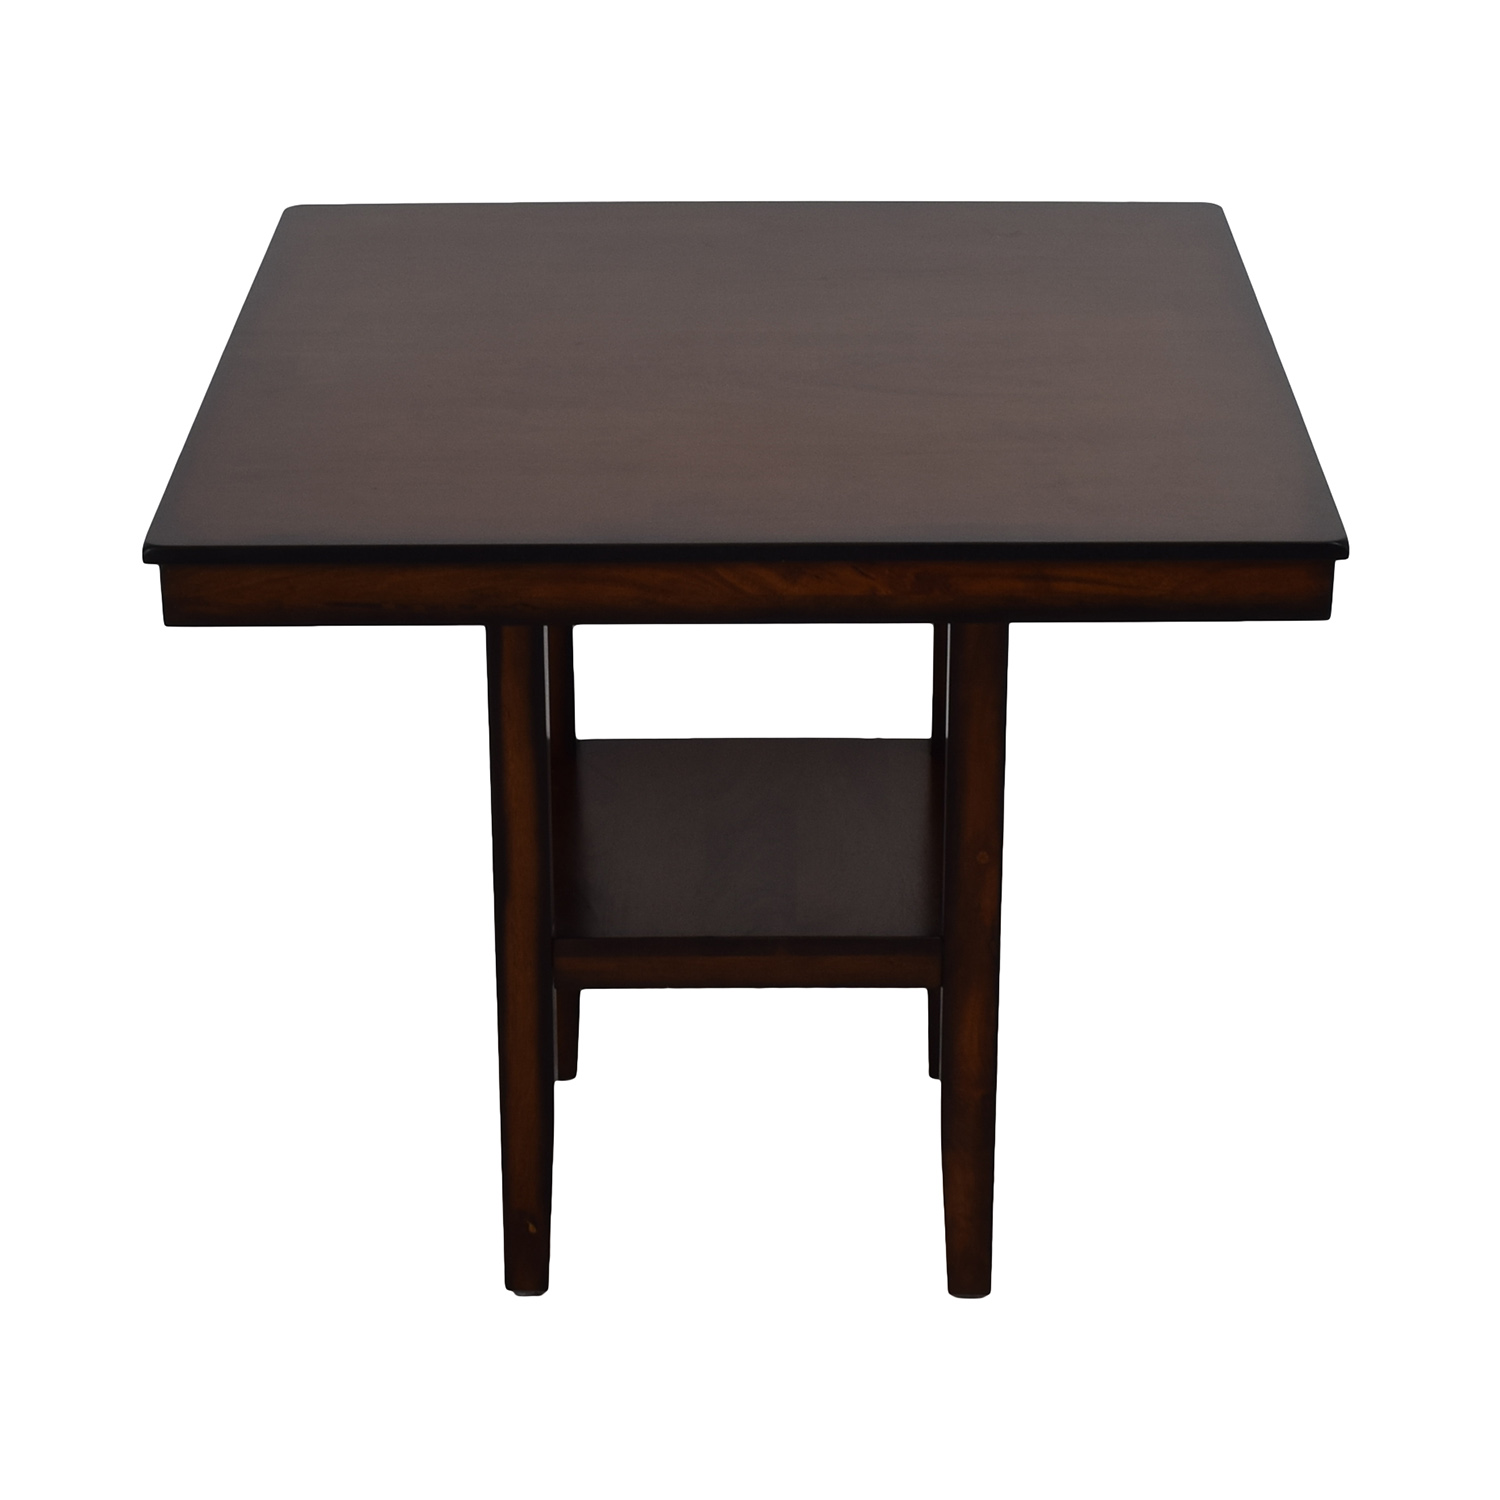 Macy's Wood Dining Table / Dining Sets